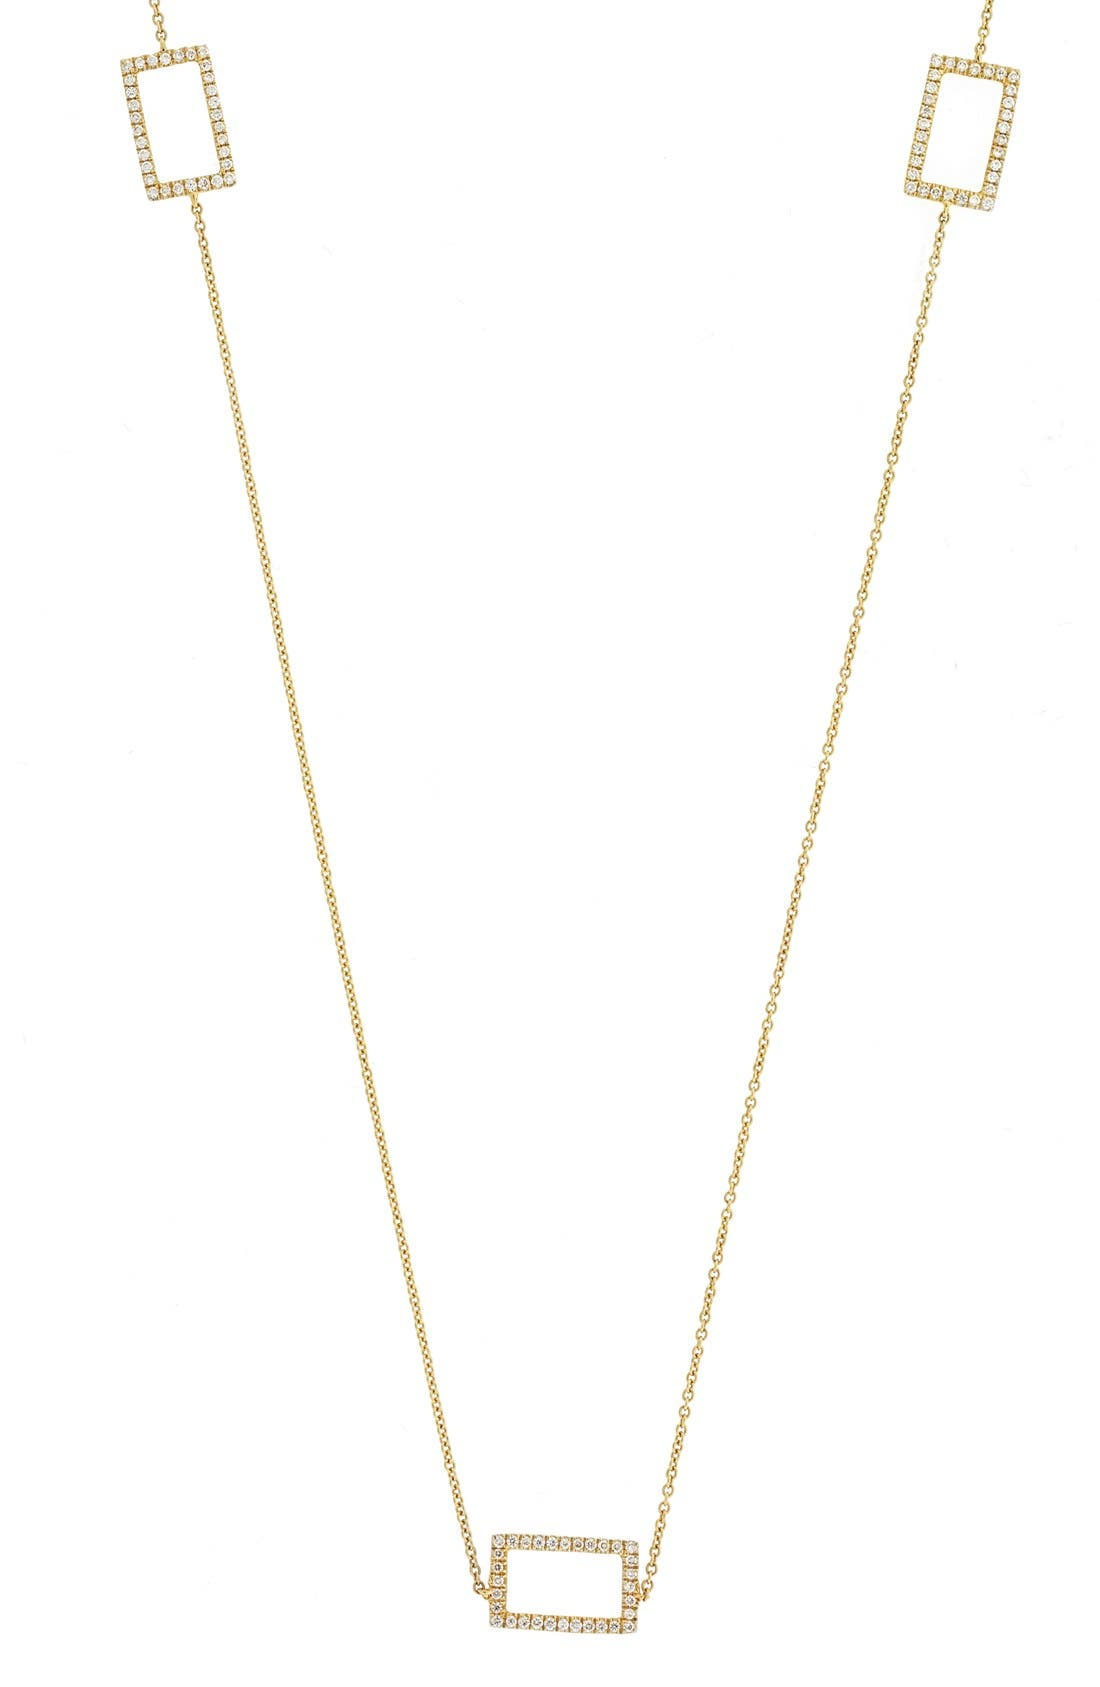 Alternate Image 1 Selected - Bony Levy Three Rectangle Diamond Station Necklace (Nordstrom Exclusive)